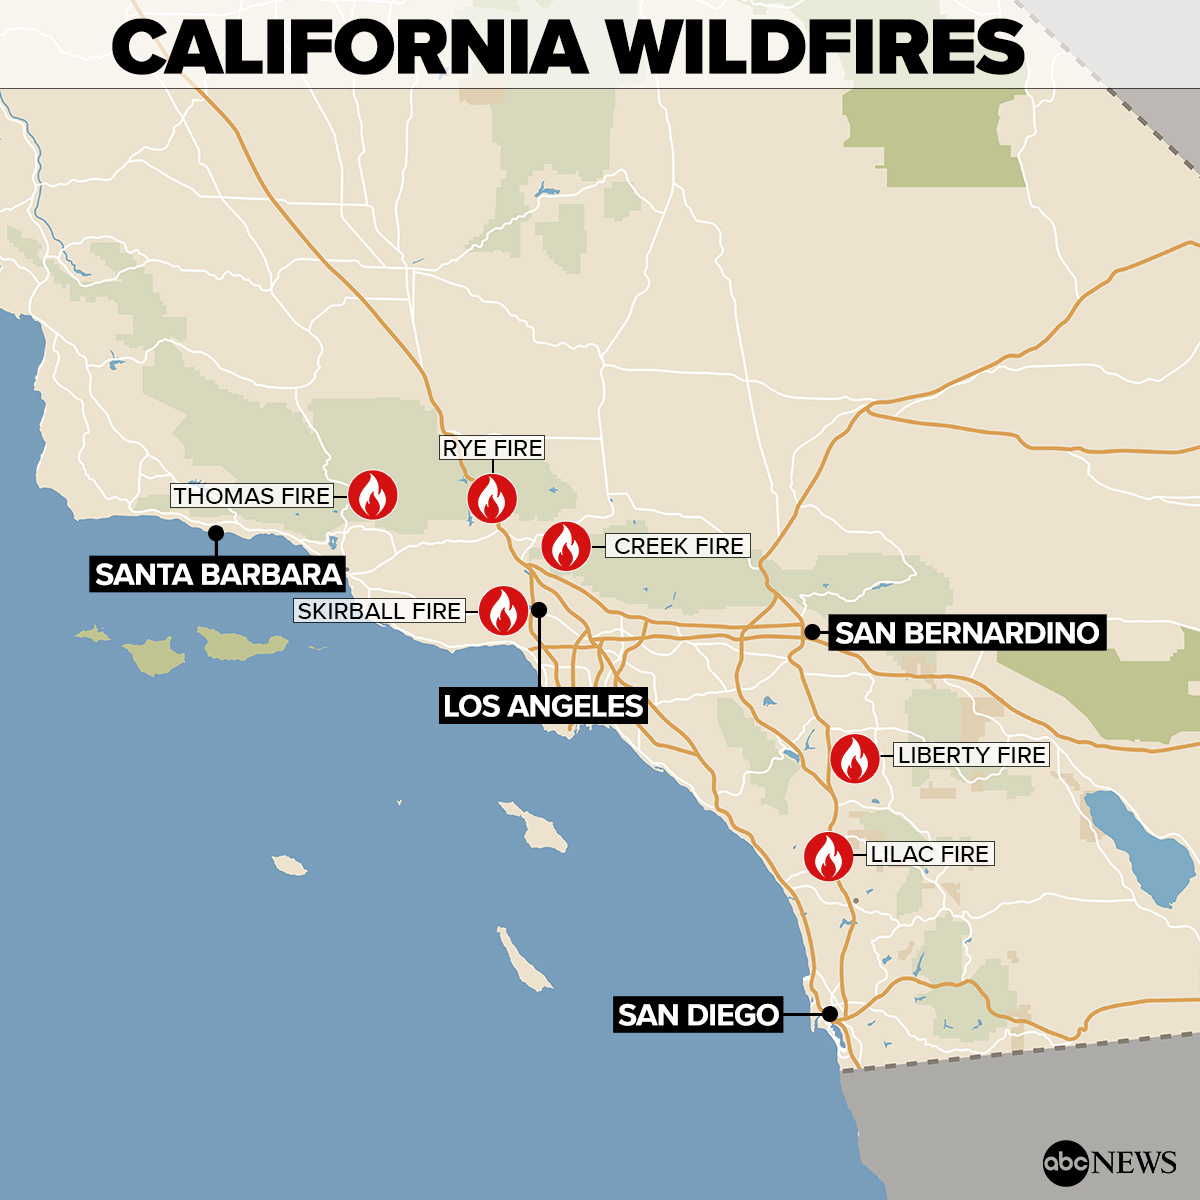 Lilac Fire Update >> Southern Californian Fires Spread Within Distance of HireAHelper HQ, Updates